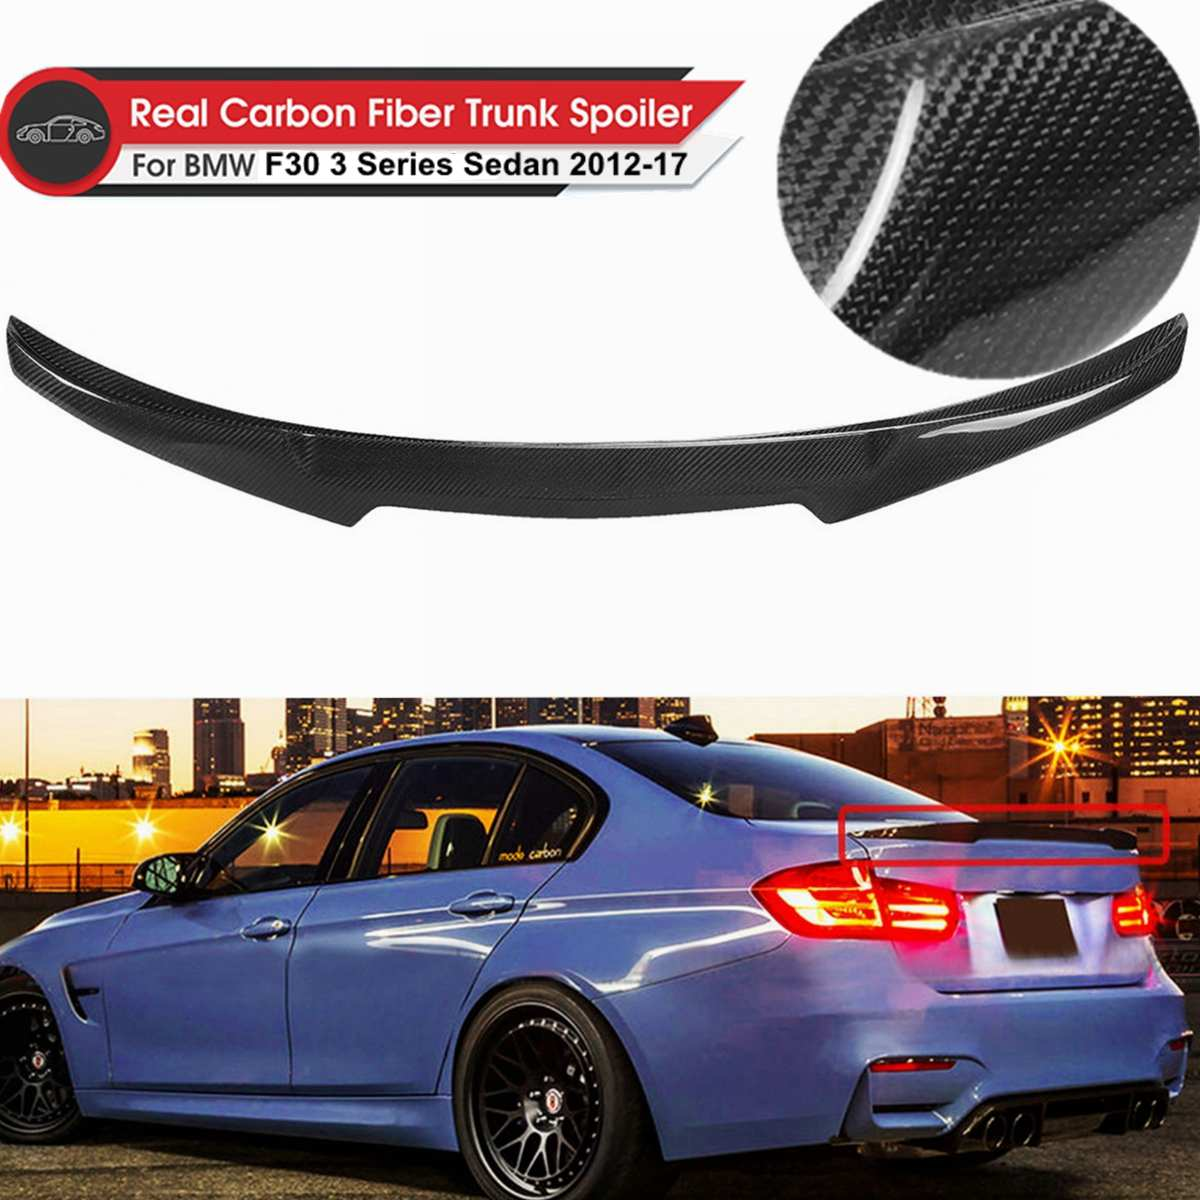 Real Carbon Fiber PSM Style Rear Trunk Boot Spoiler For BMW F30 /& F80 M3 Sedan